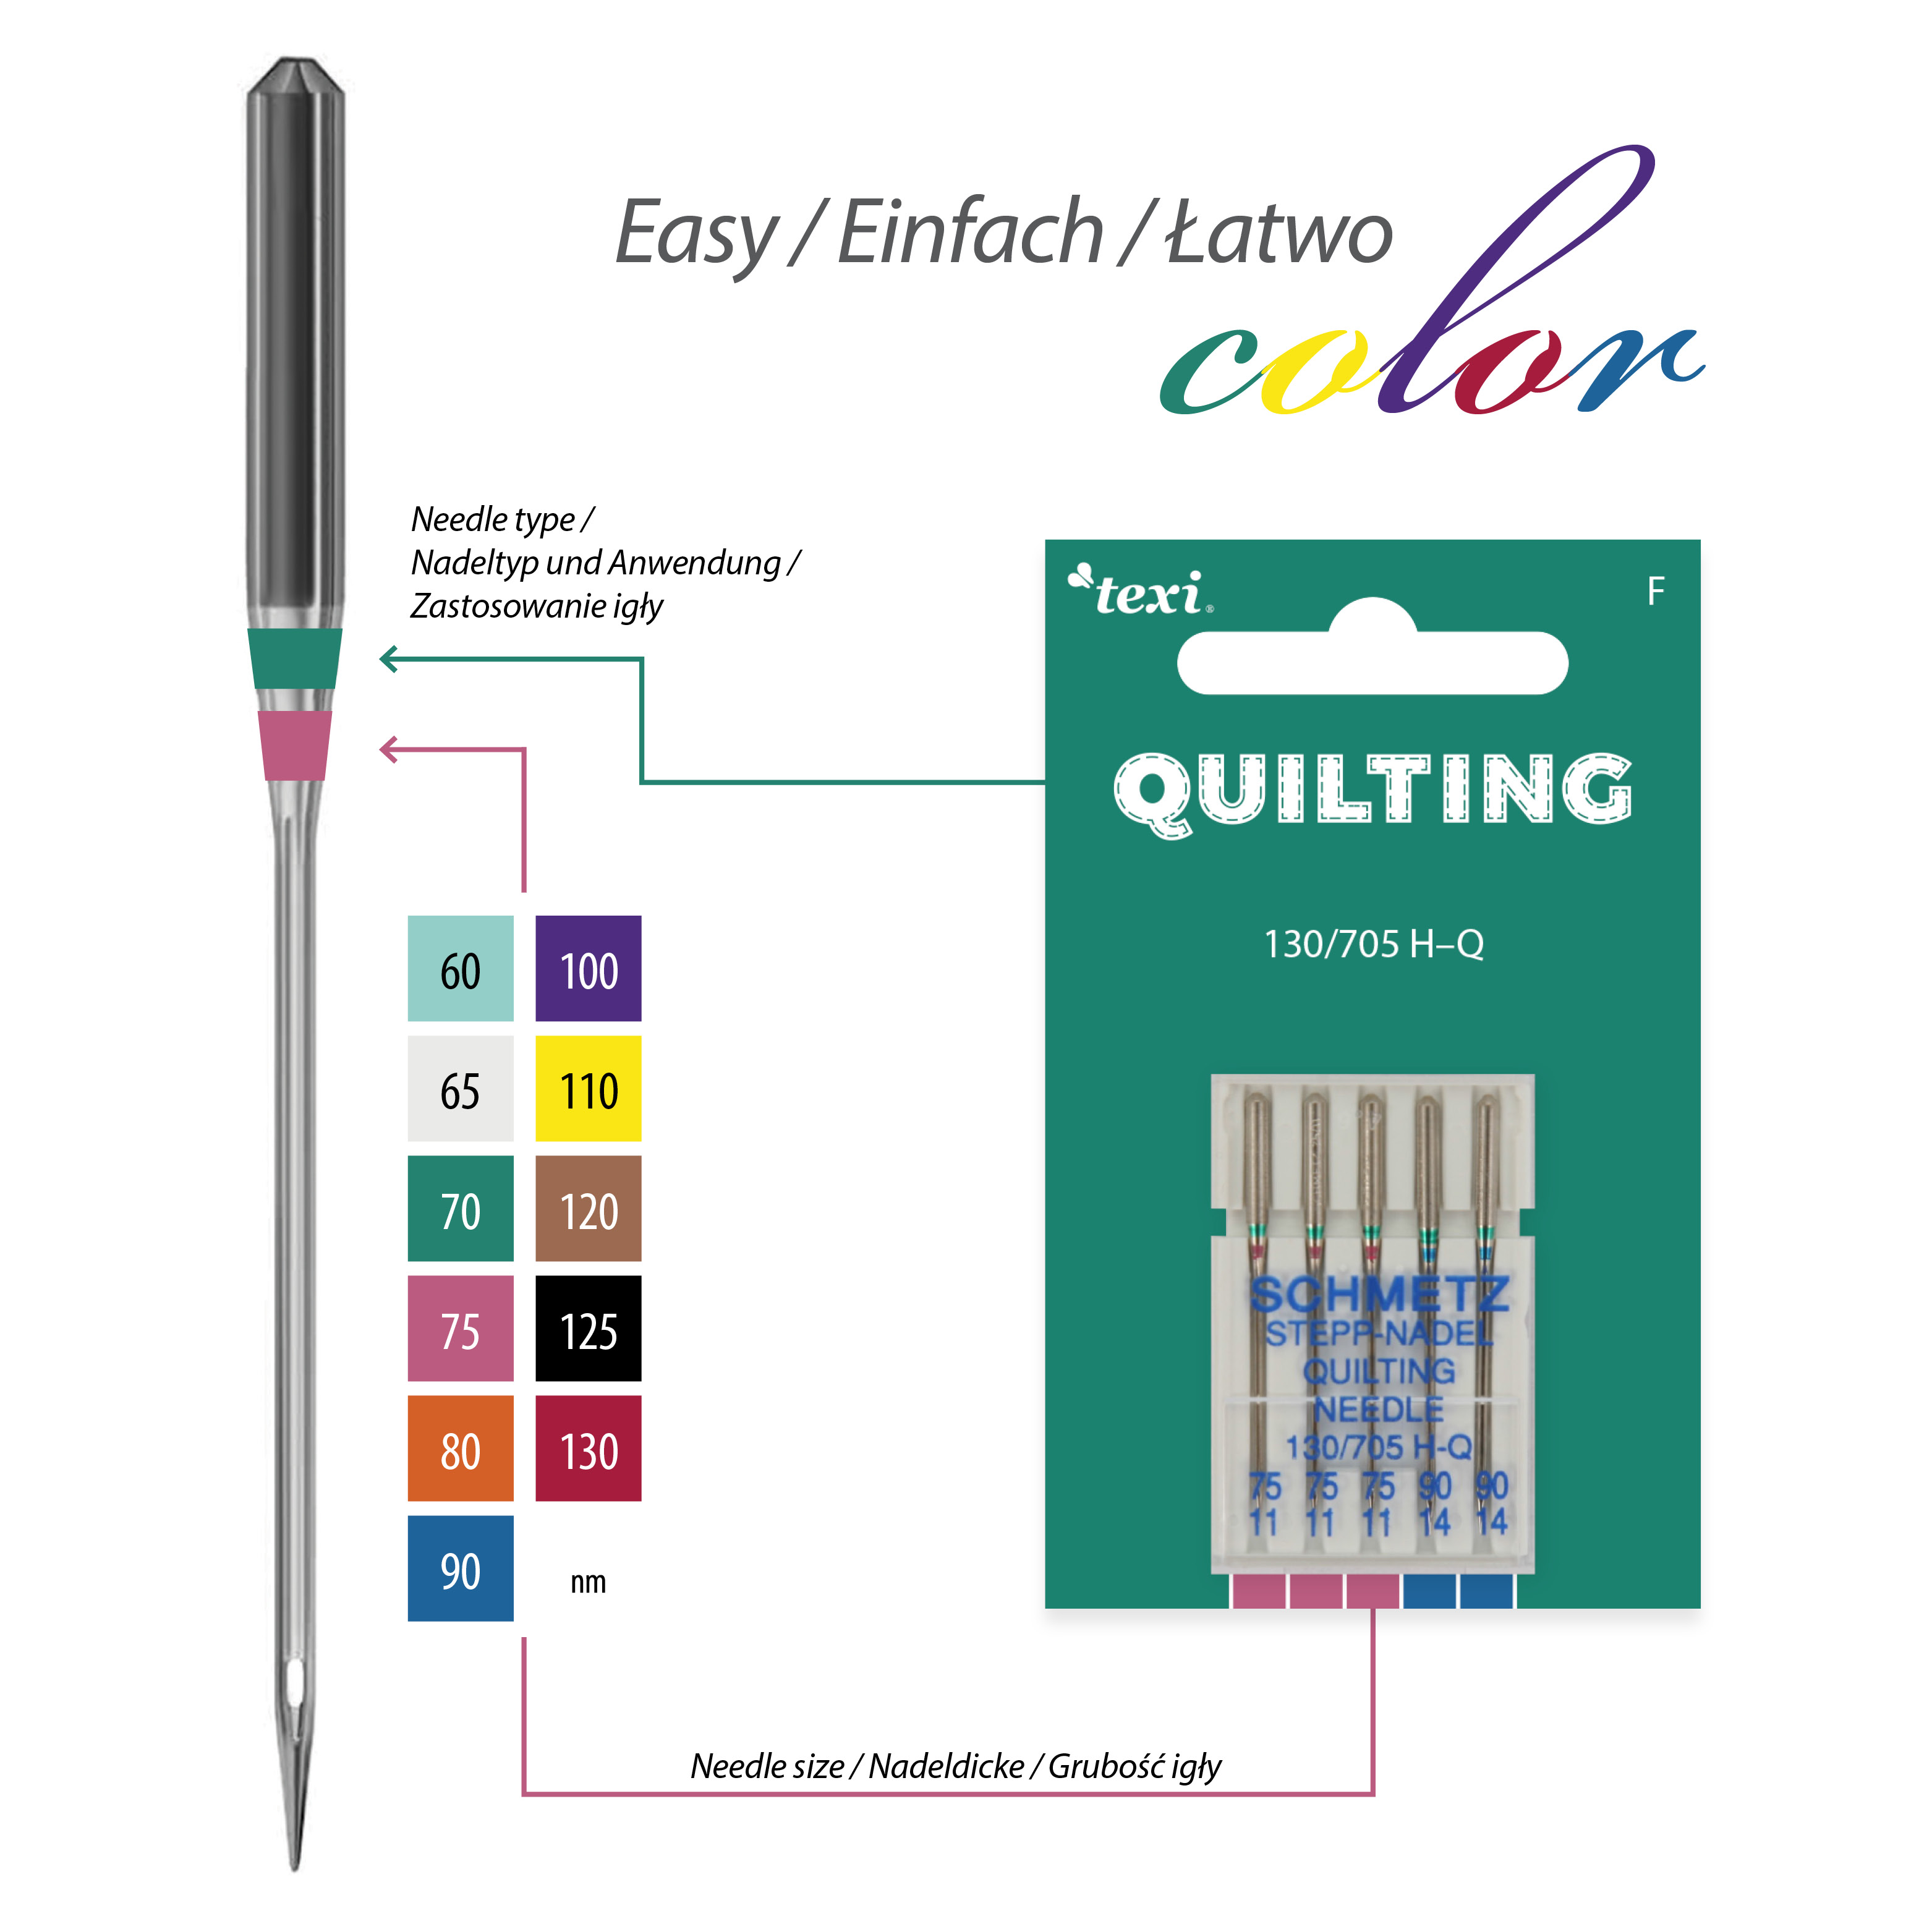 Quilting needles for household machines, 5 pcs, size 75x3, 90x2 - TEXI QUILTING 130/705 H-Q 3x75 2x90